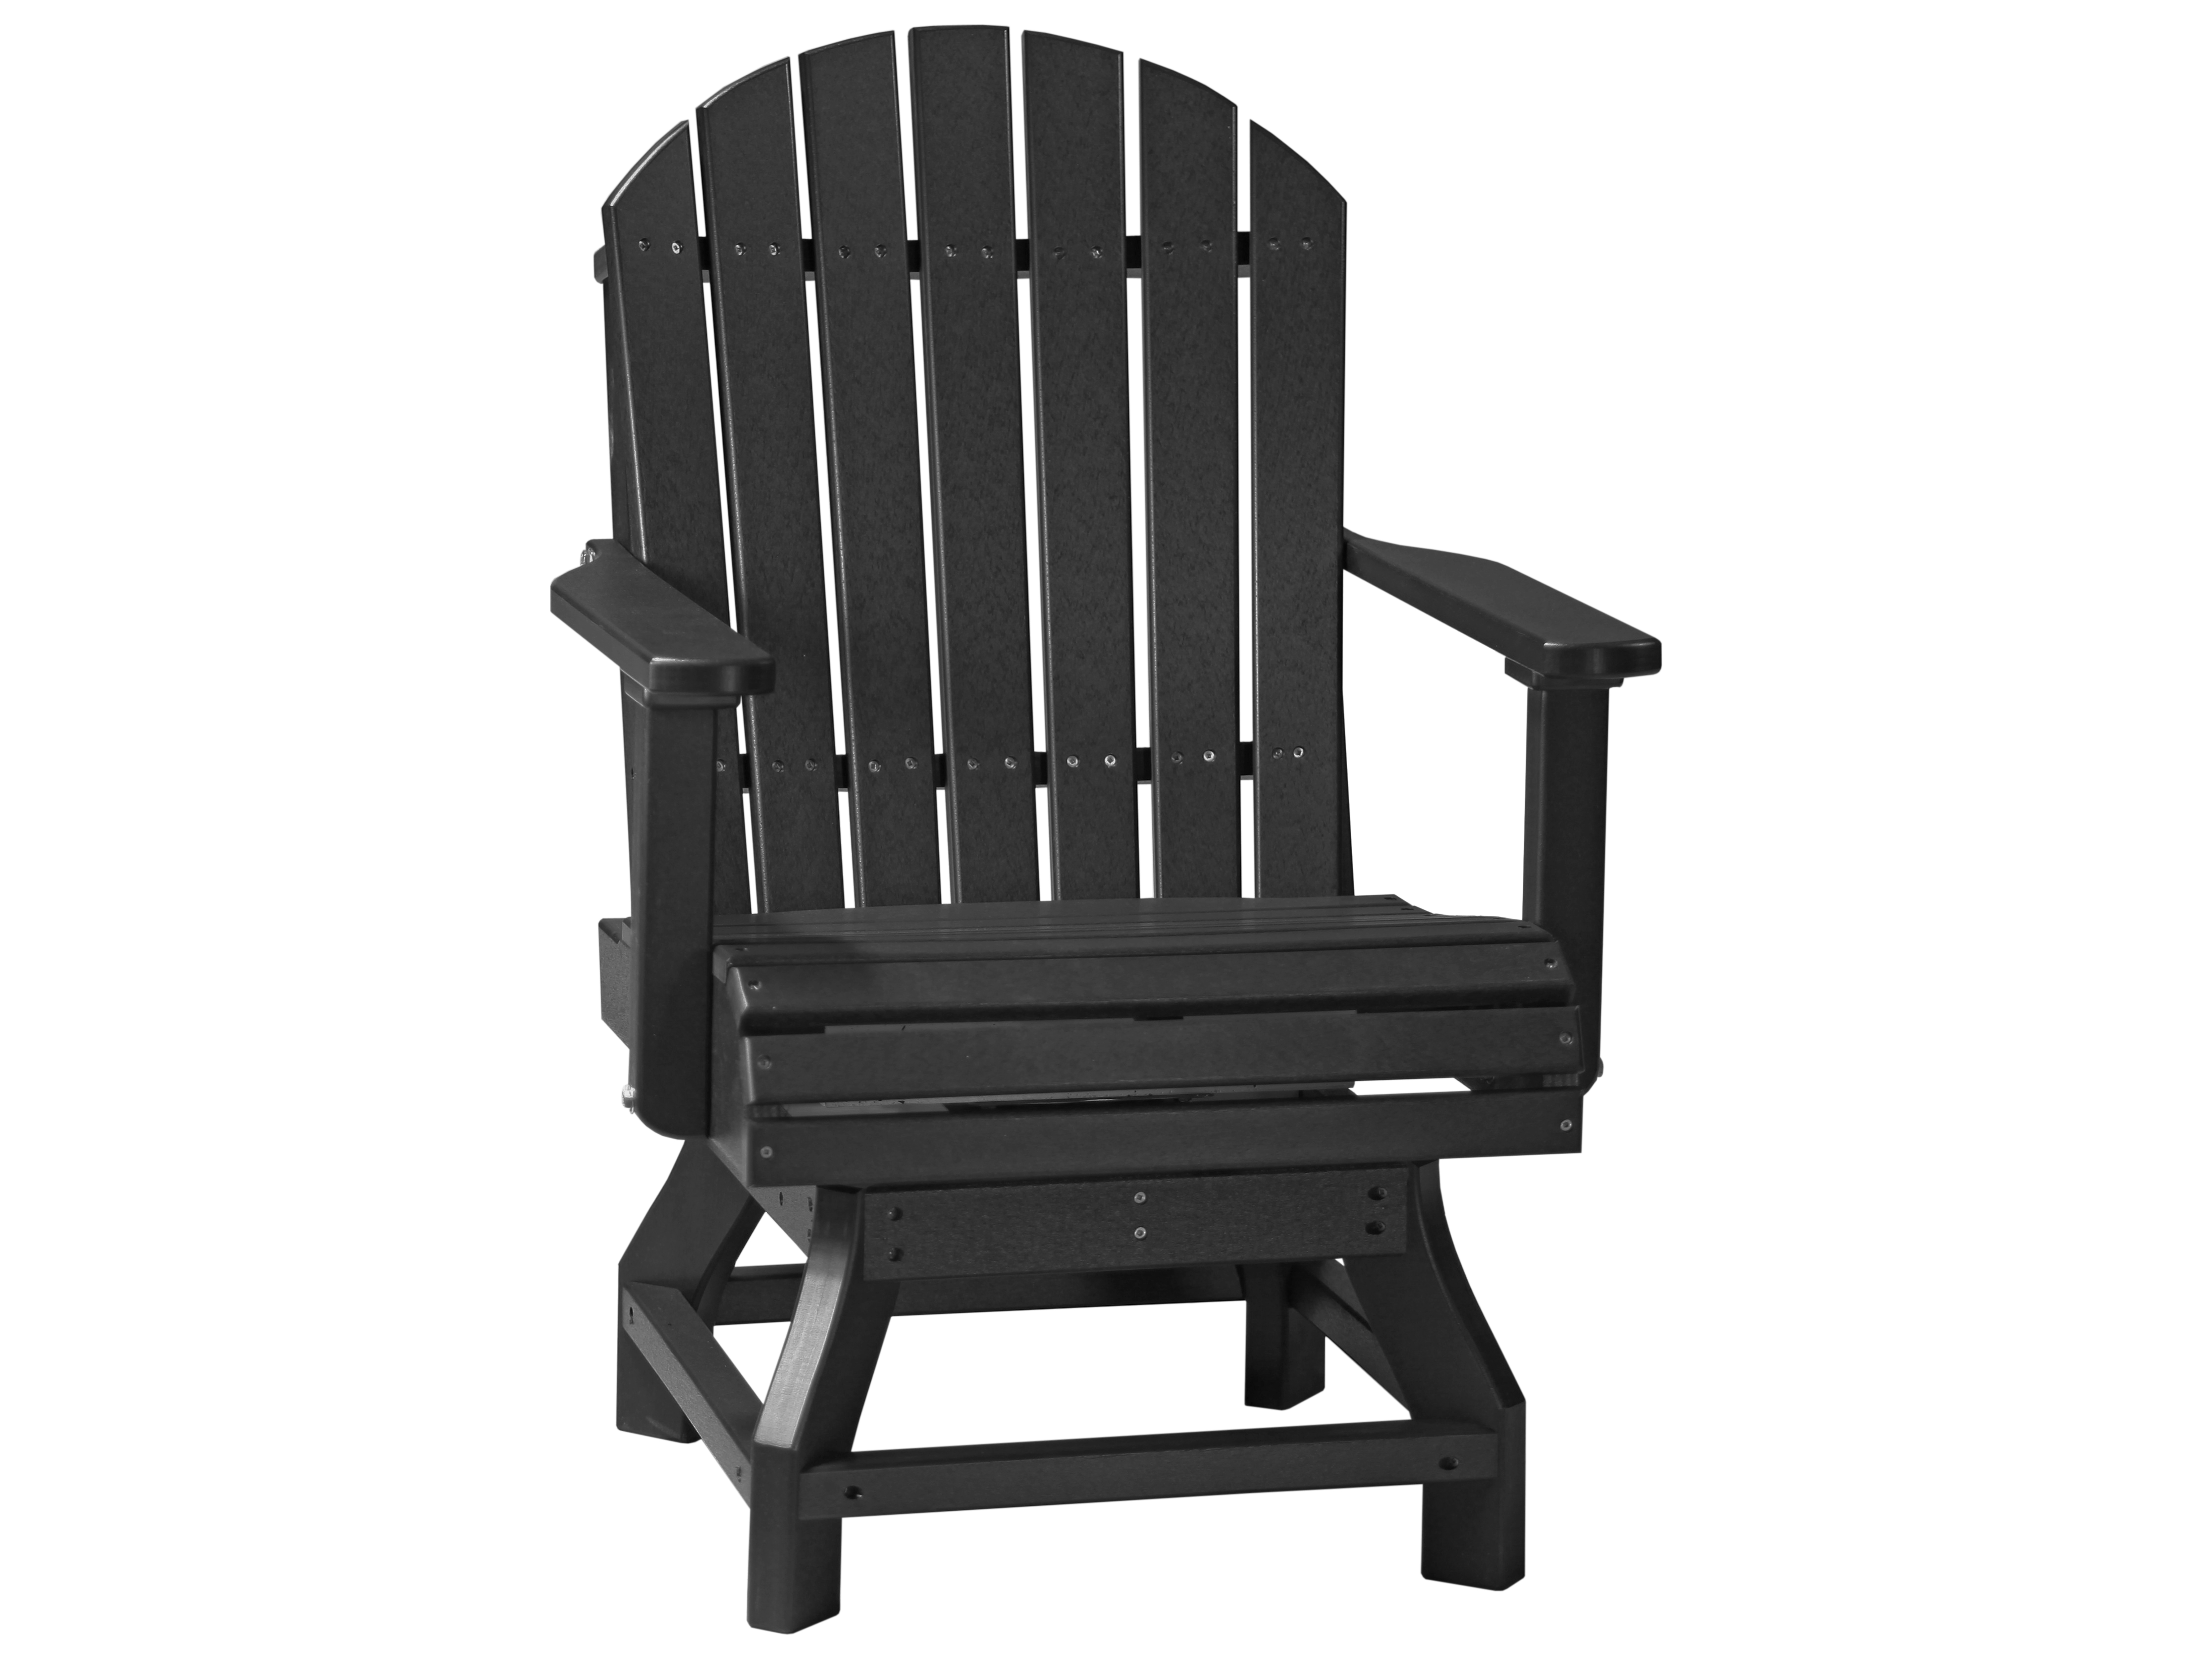 adirondack chairs recycled materials cheap patio chair luxcraft plastic swivel dining height